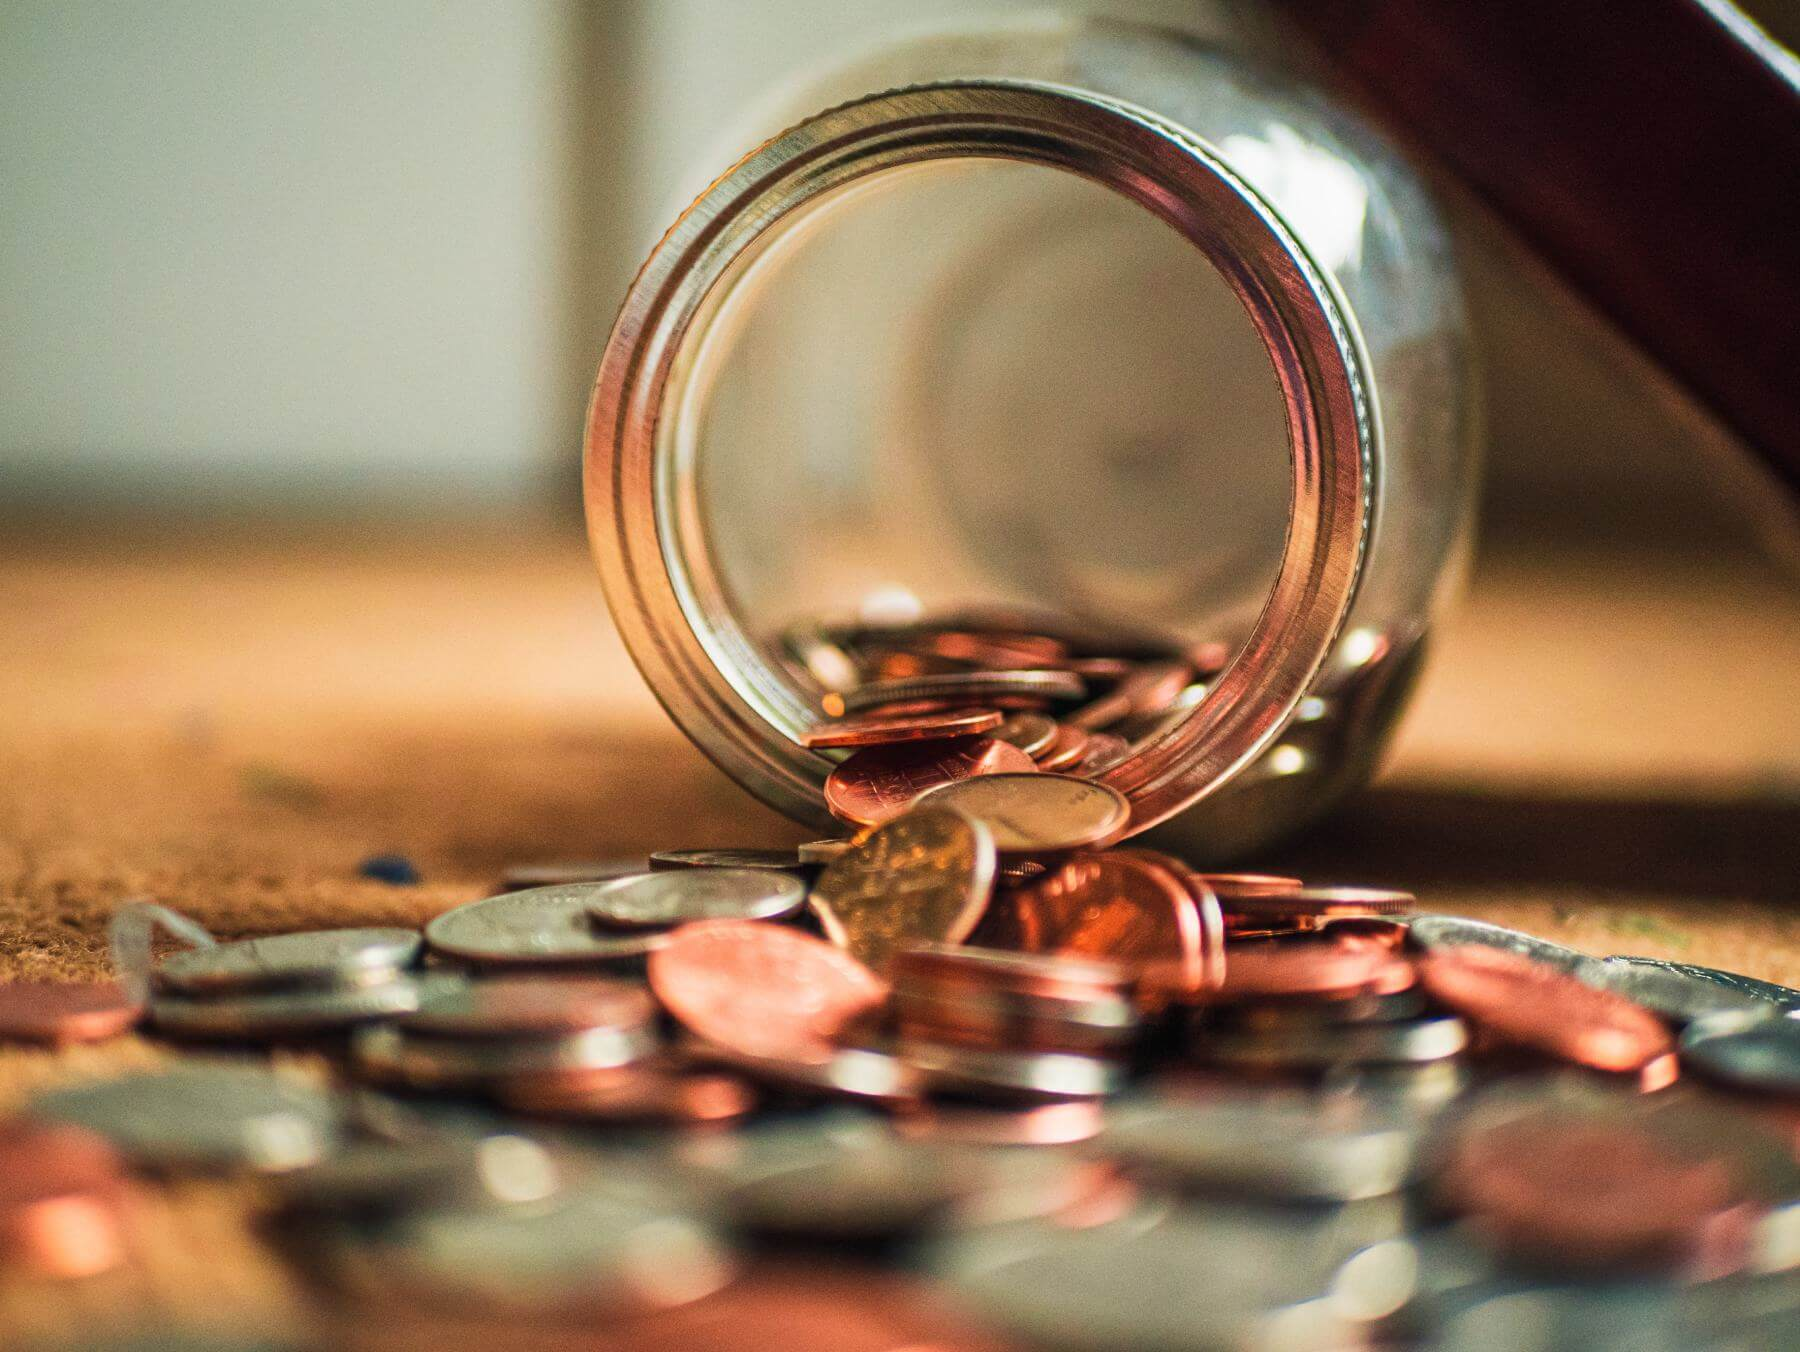 money loose change - josh-appel-NeTPASr-bmQ-unsplash